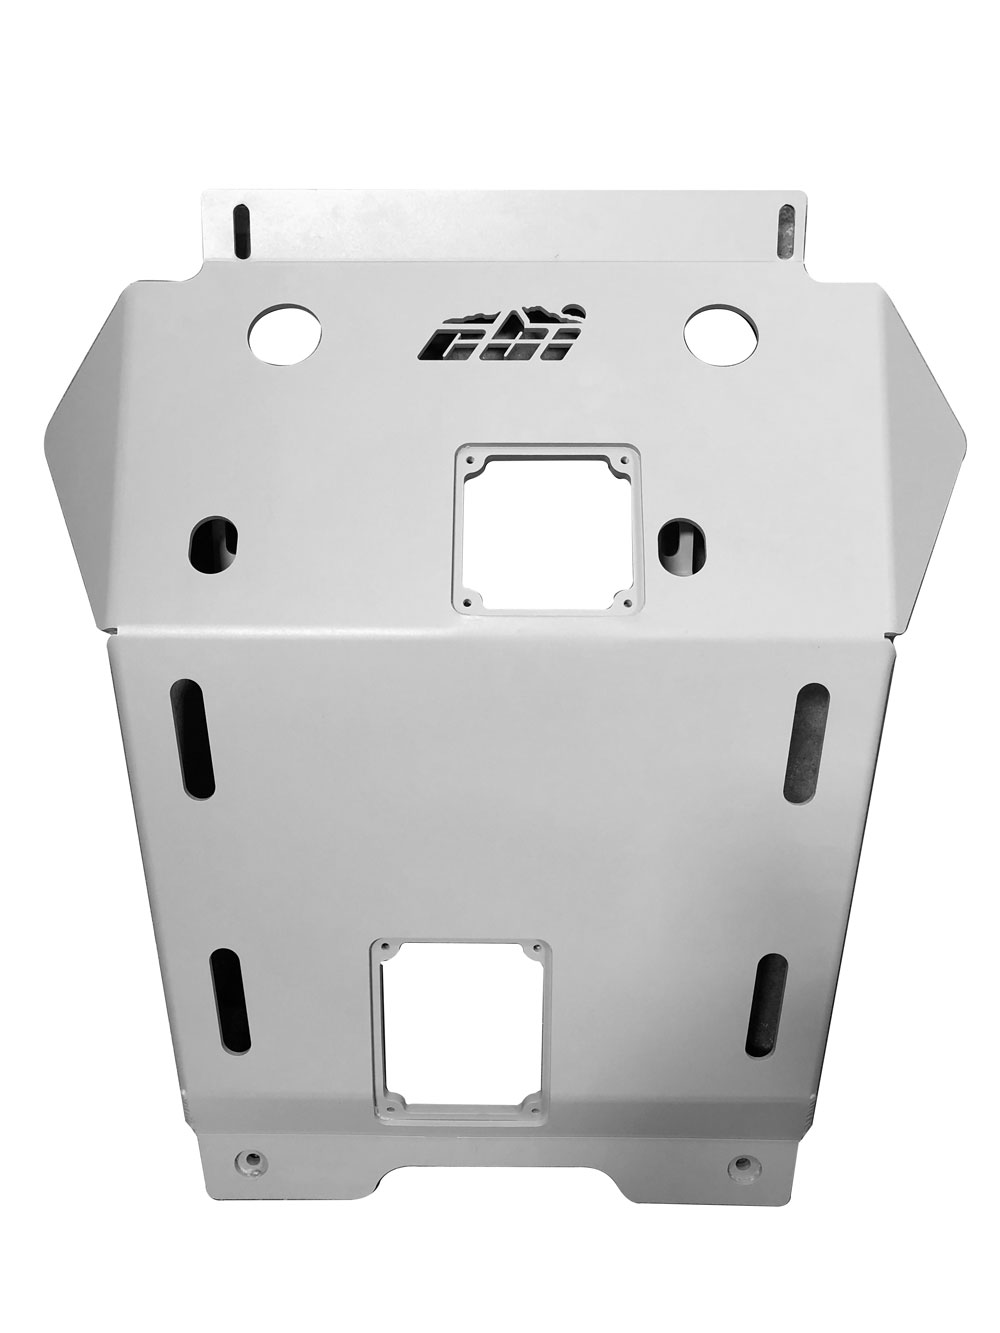 CBI 5th Gen 4Runner Front Skid Plate